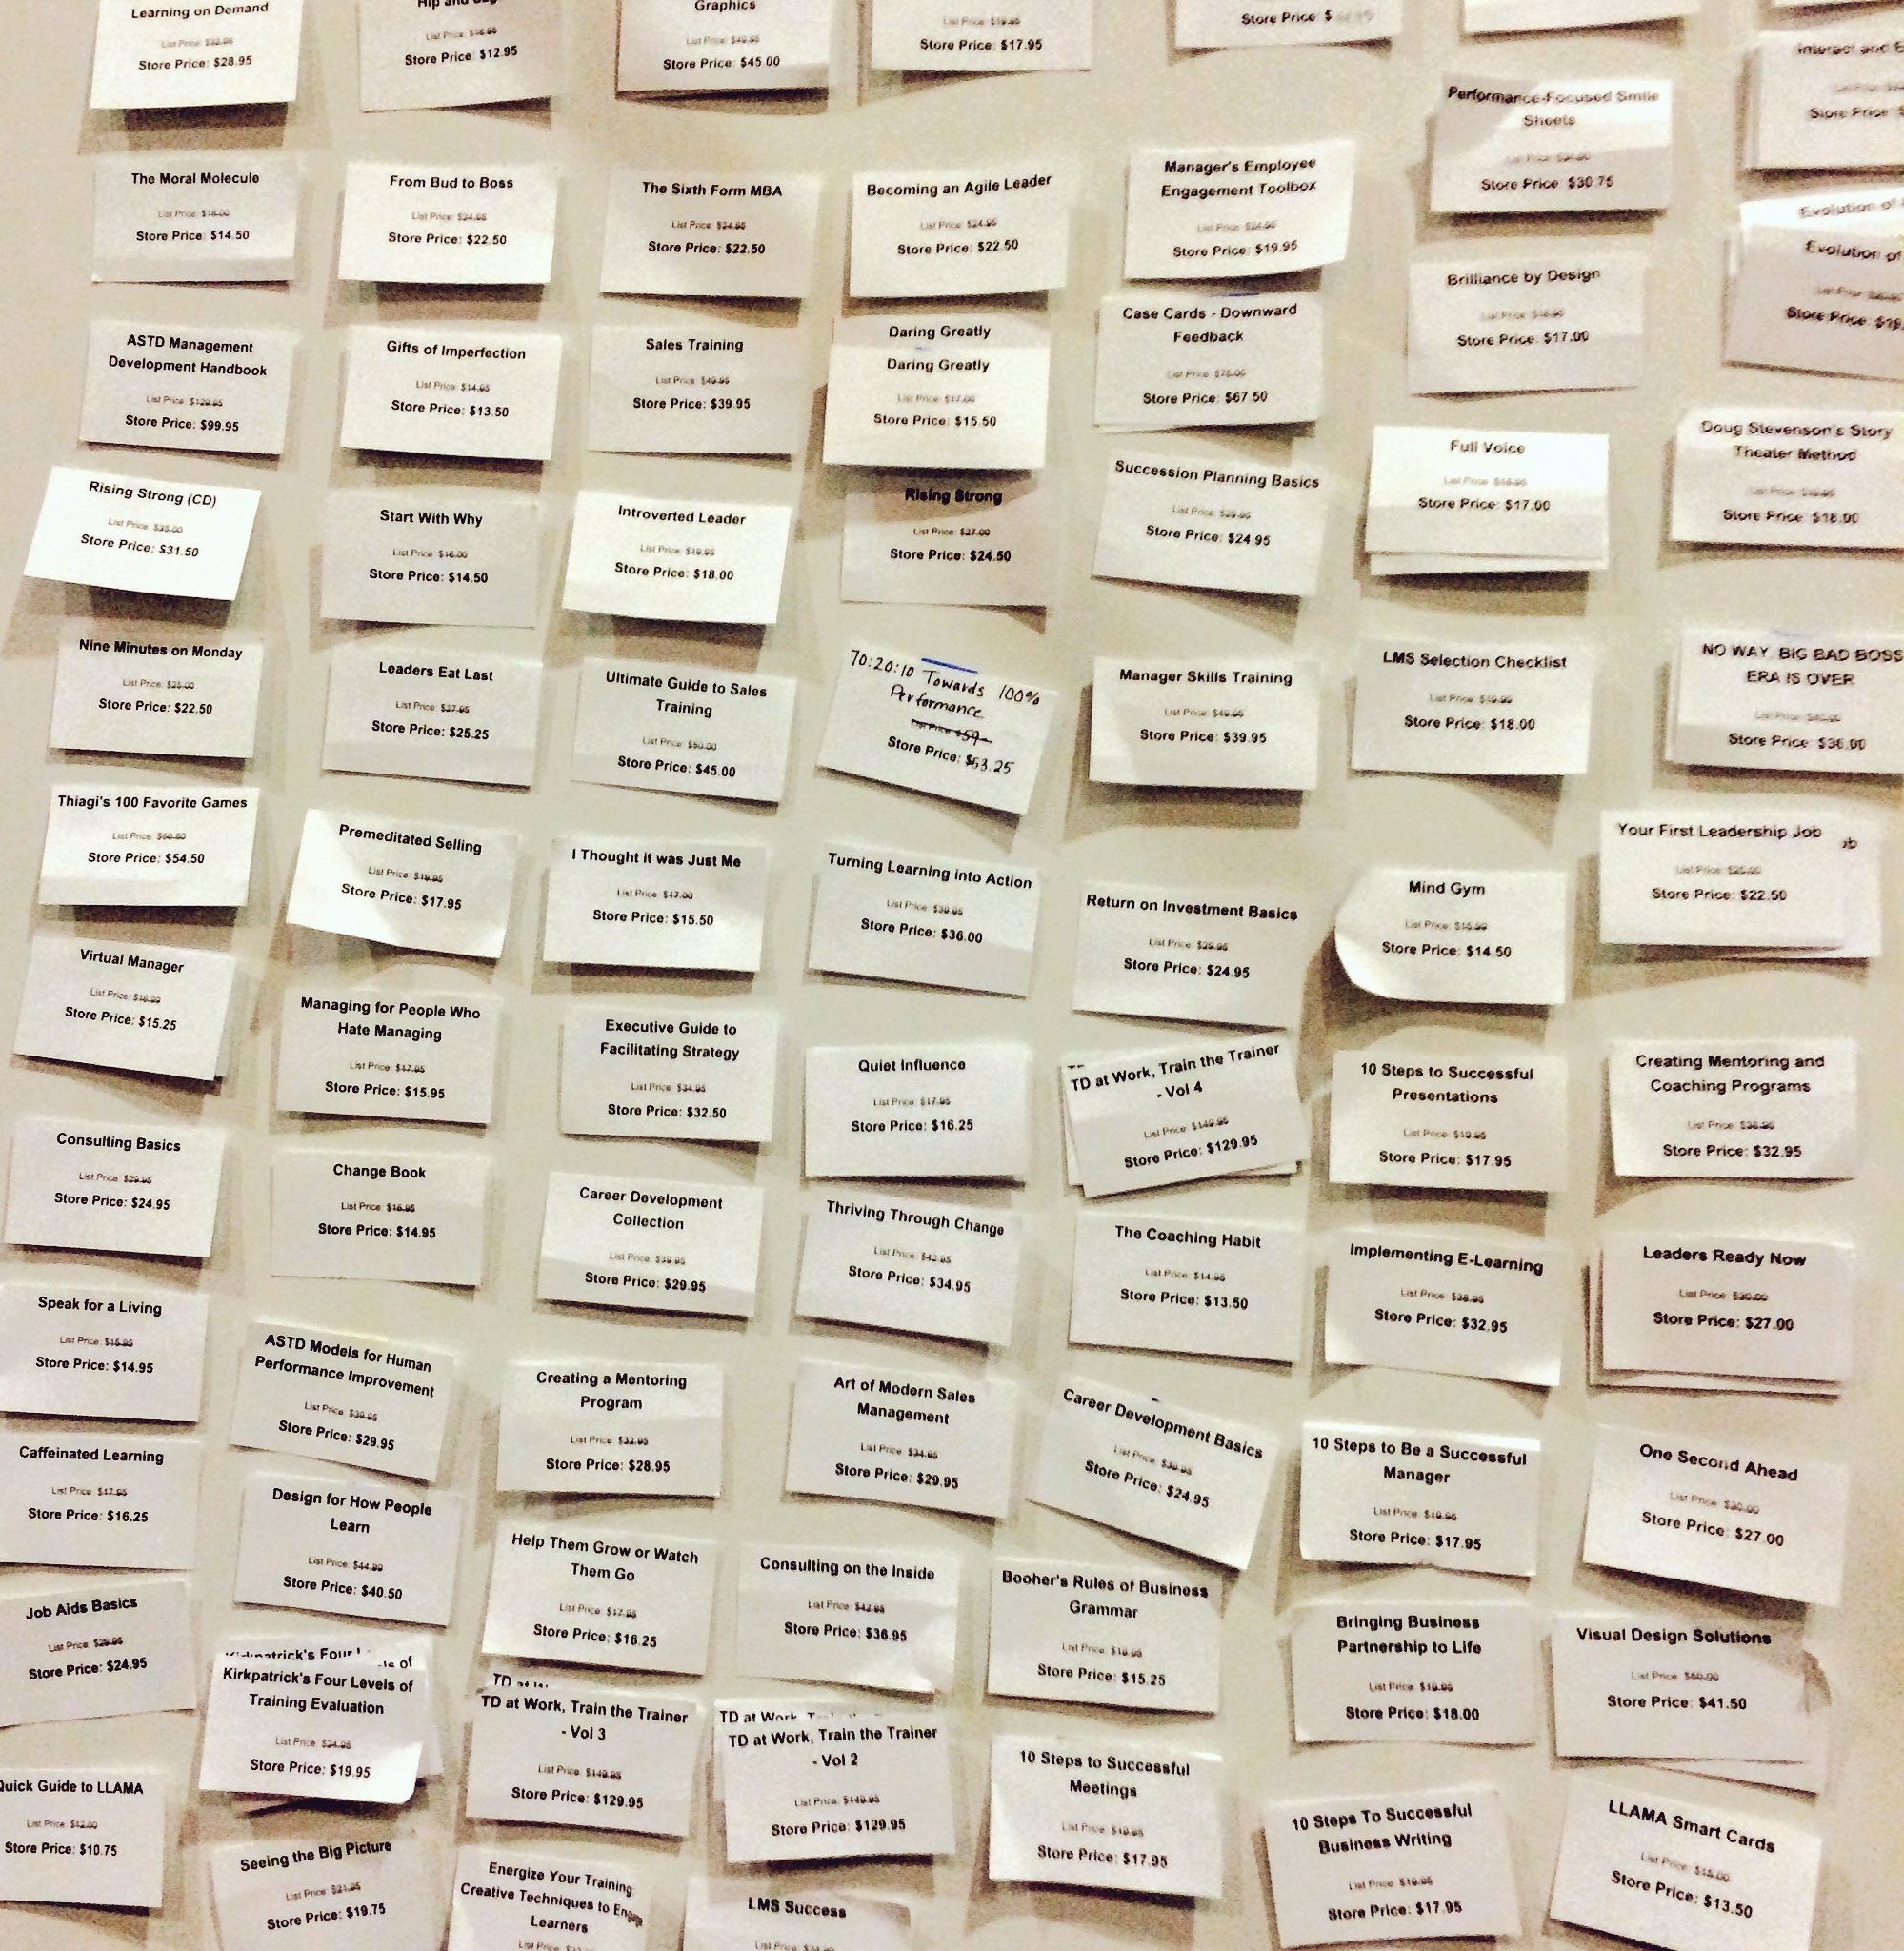 Just a small part of our sold out wall of fame. Another successful conference store complete! #ATD2016 https://t.co/8q4KMYQ36L